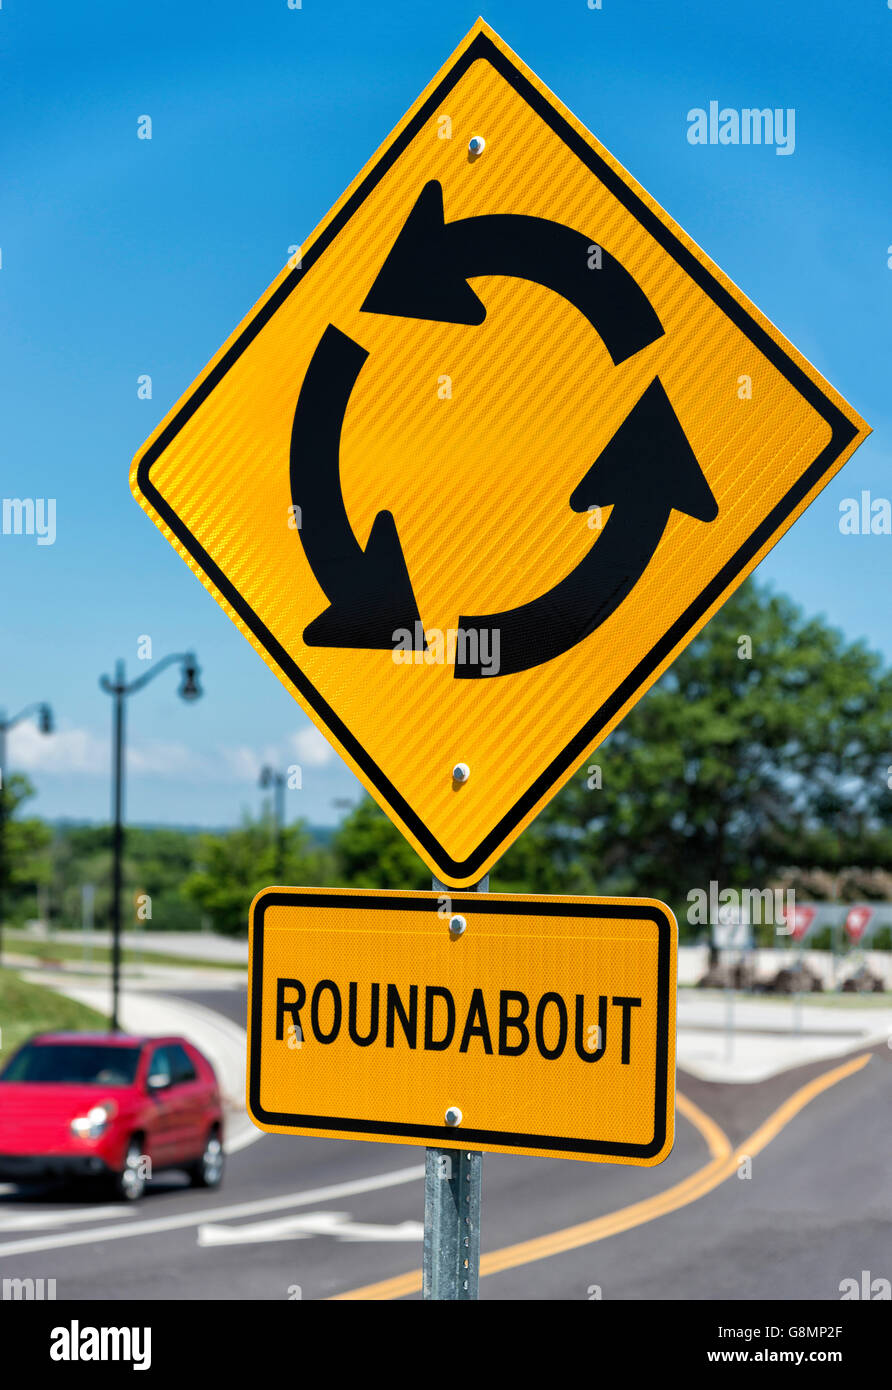 Sign For Roundabout Intersection vertical shot - Stock Image